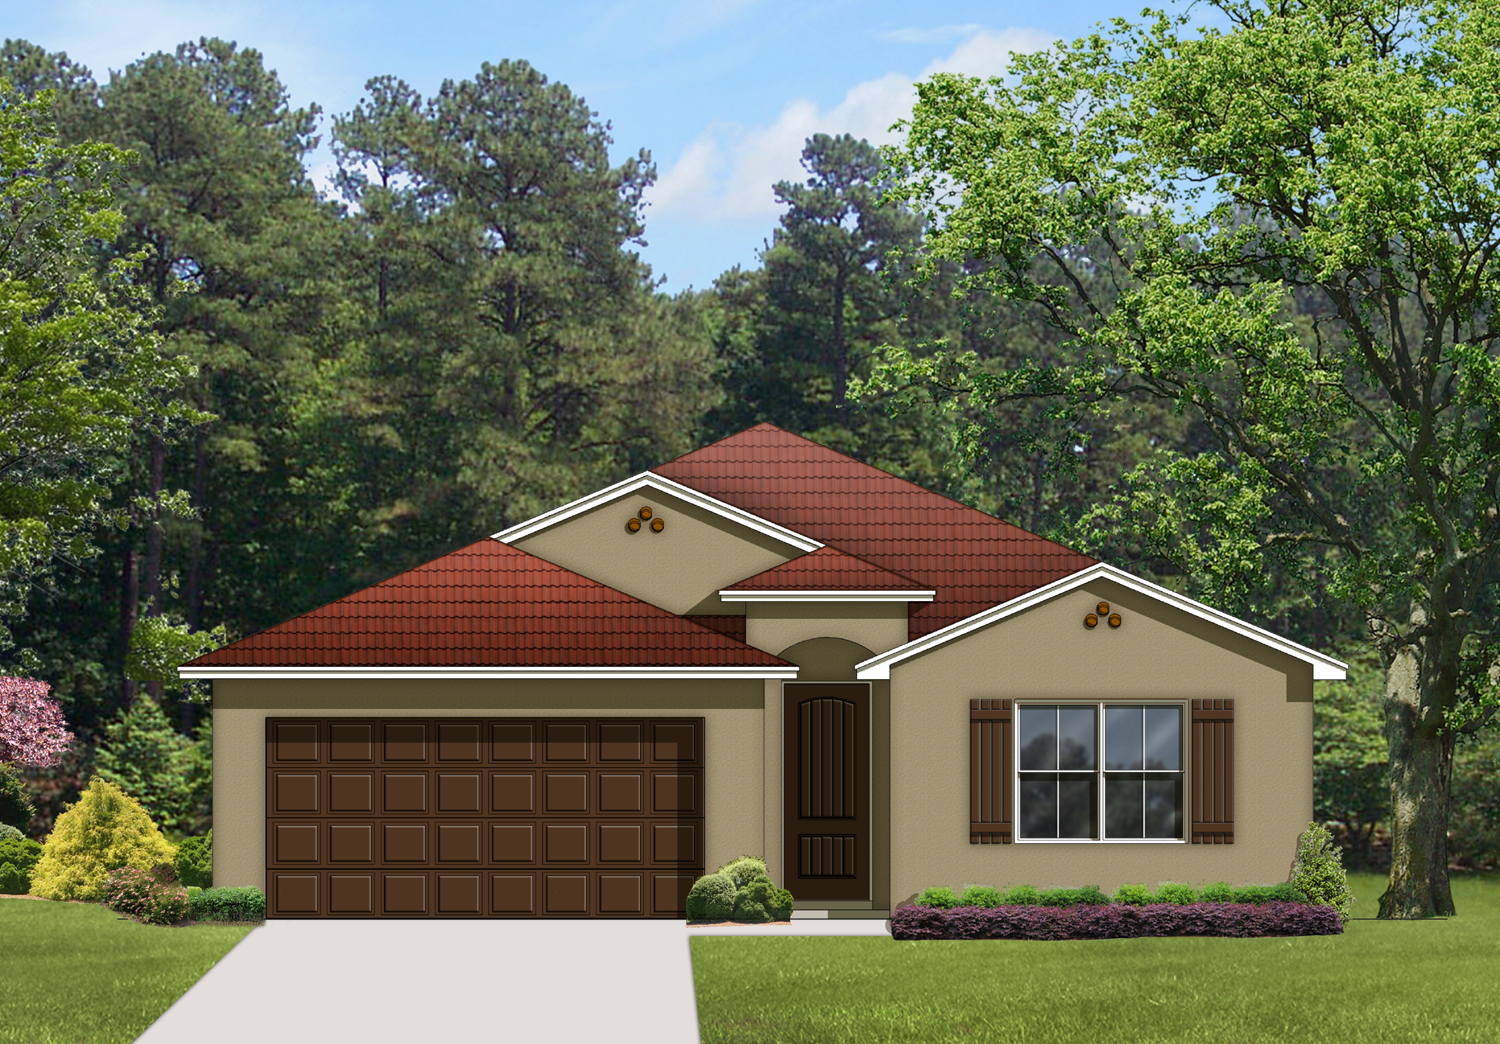 House Front Design 1 K as well Tamil Home Design And Floor Plan further Rambler House Plans moreover Simple Deck Designs Mobile Homes besides House Plans Single Storey South Africa. on free house plans modern single story